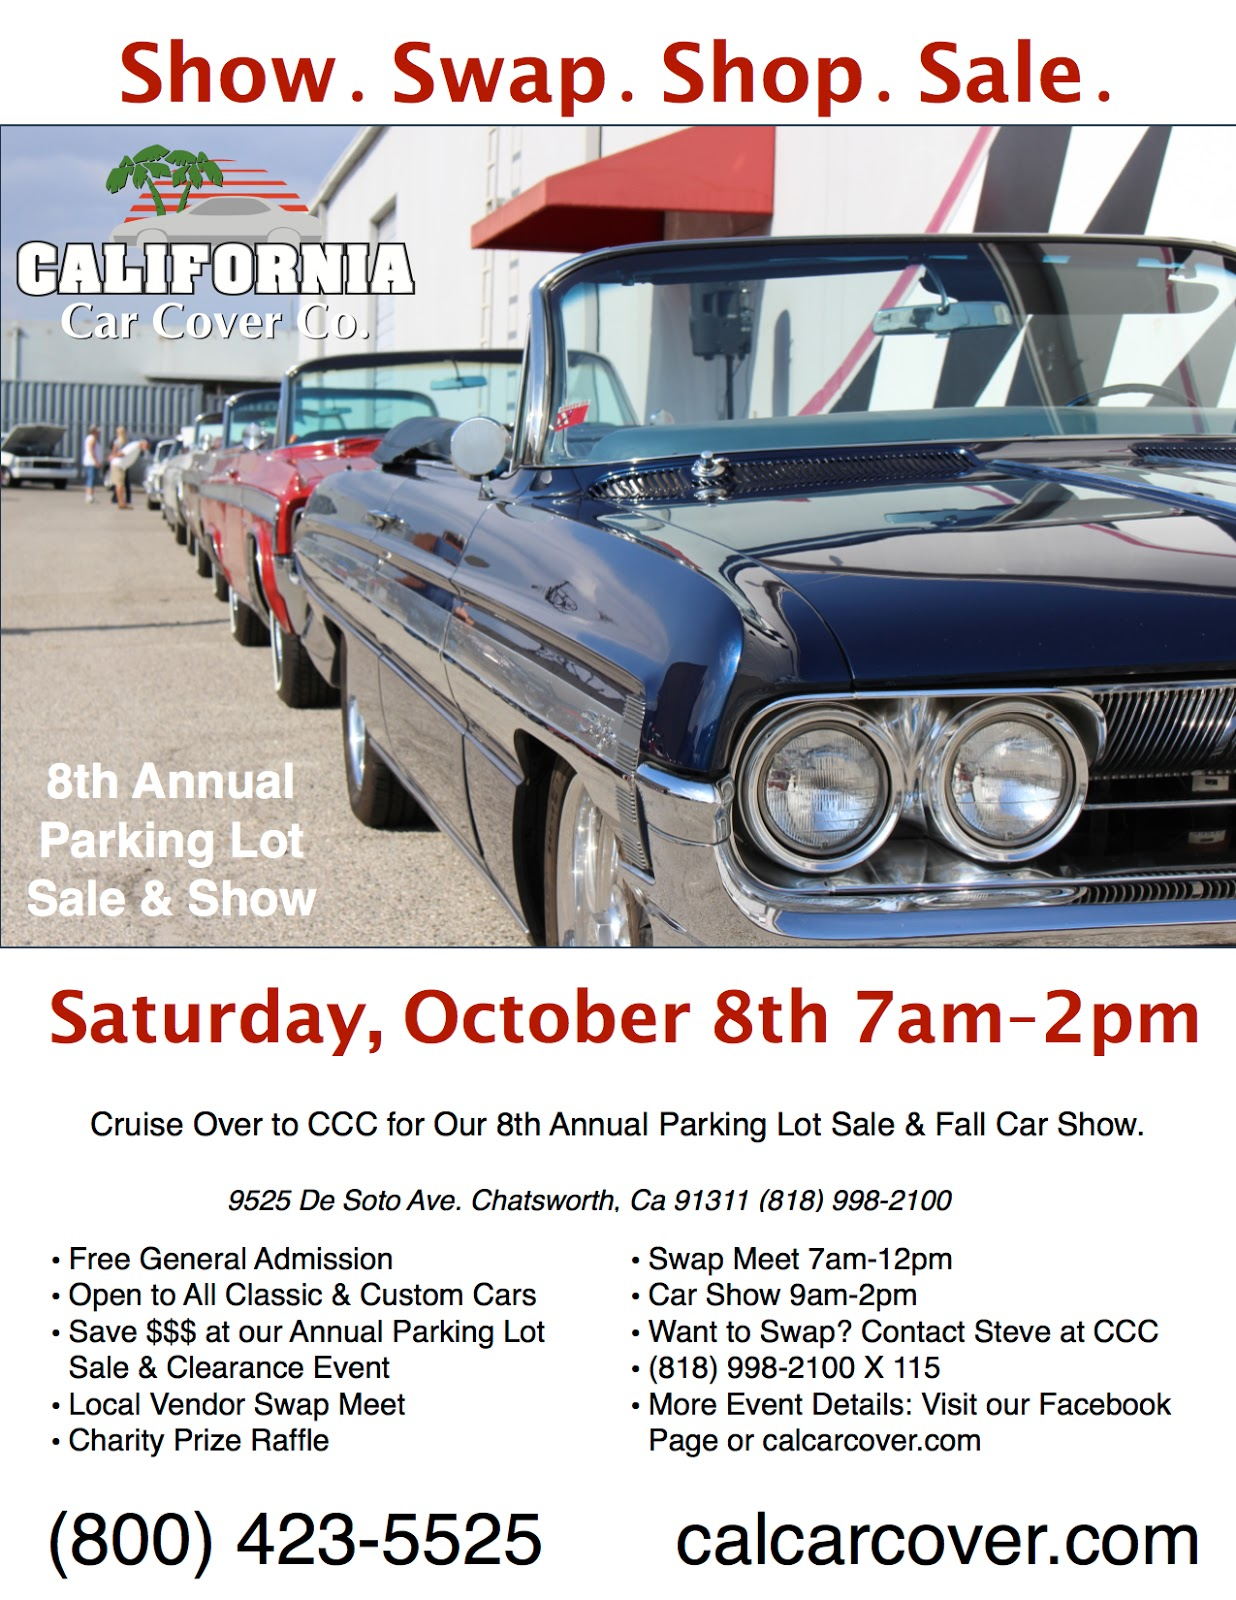 Covering Classic Cars Th Annual California Car Cover Parking Lot - Car show cars for sale